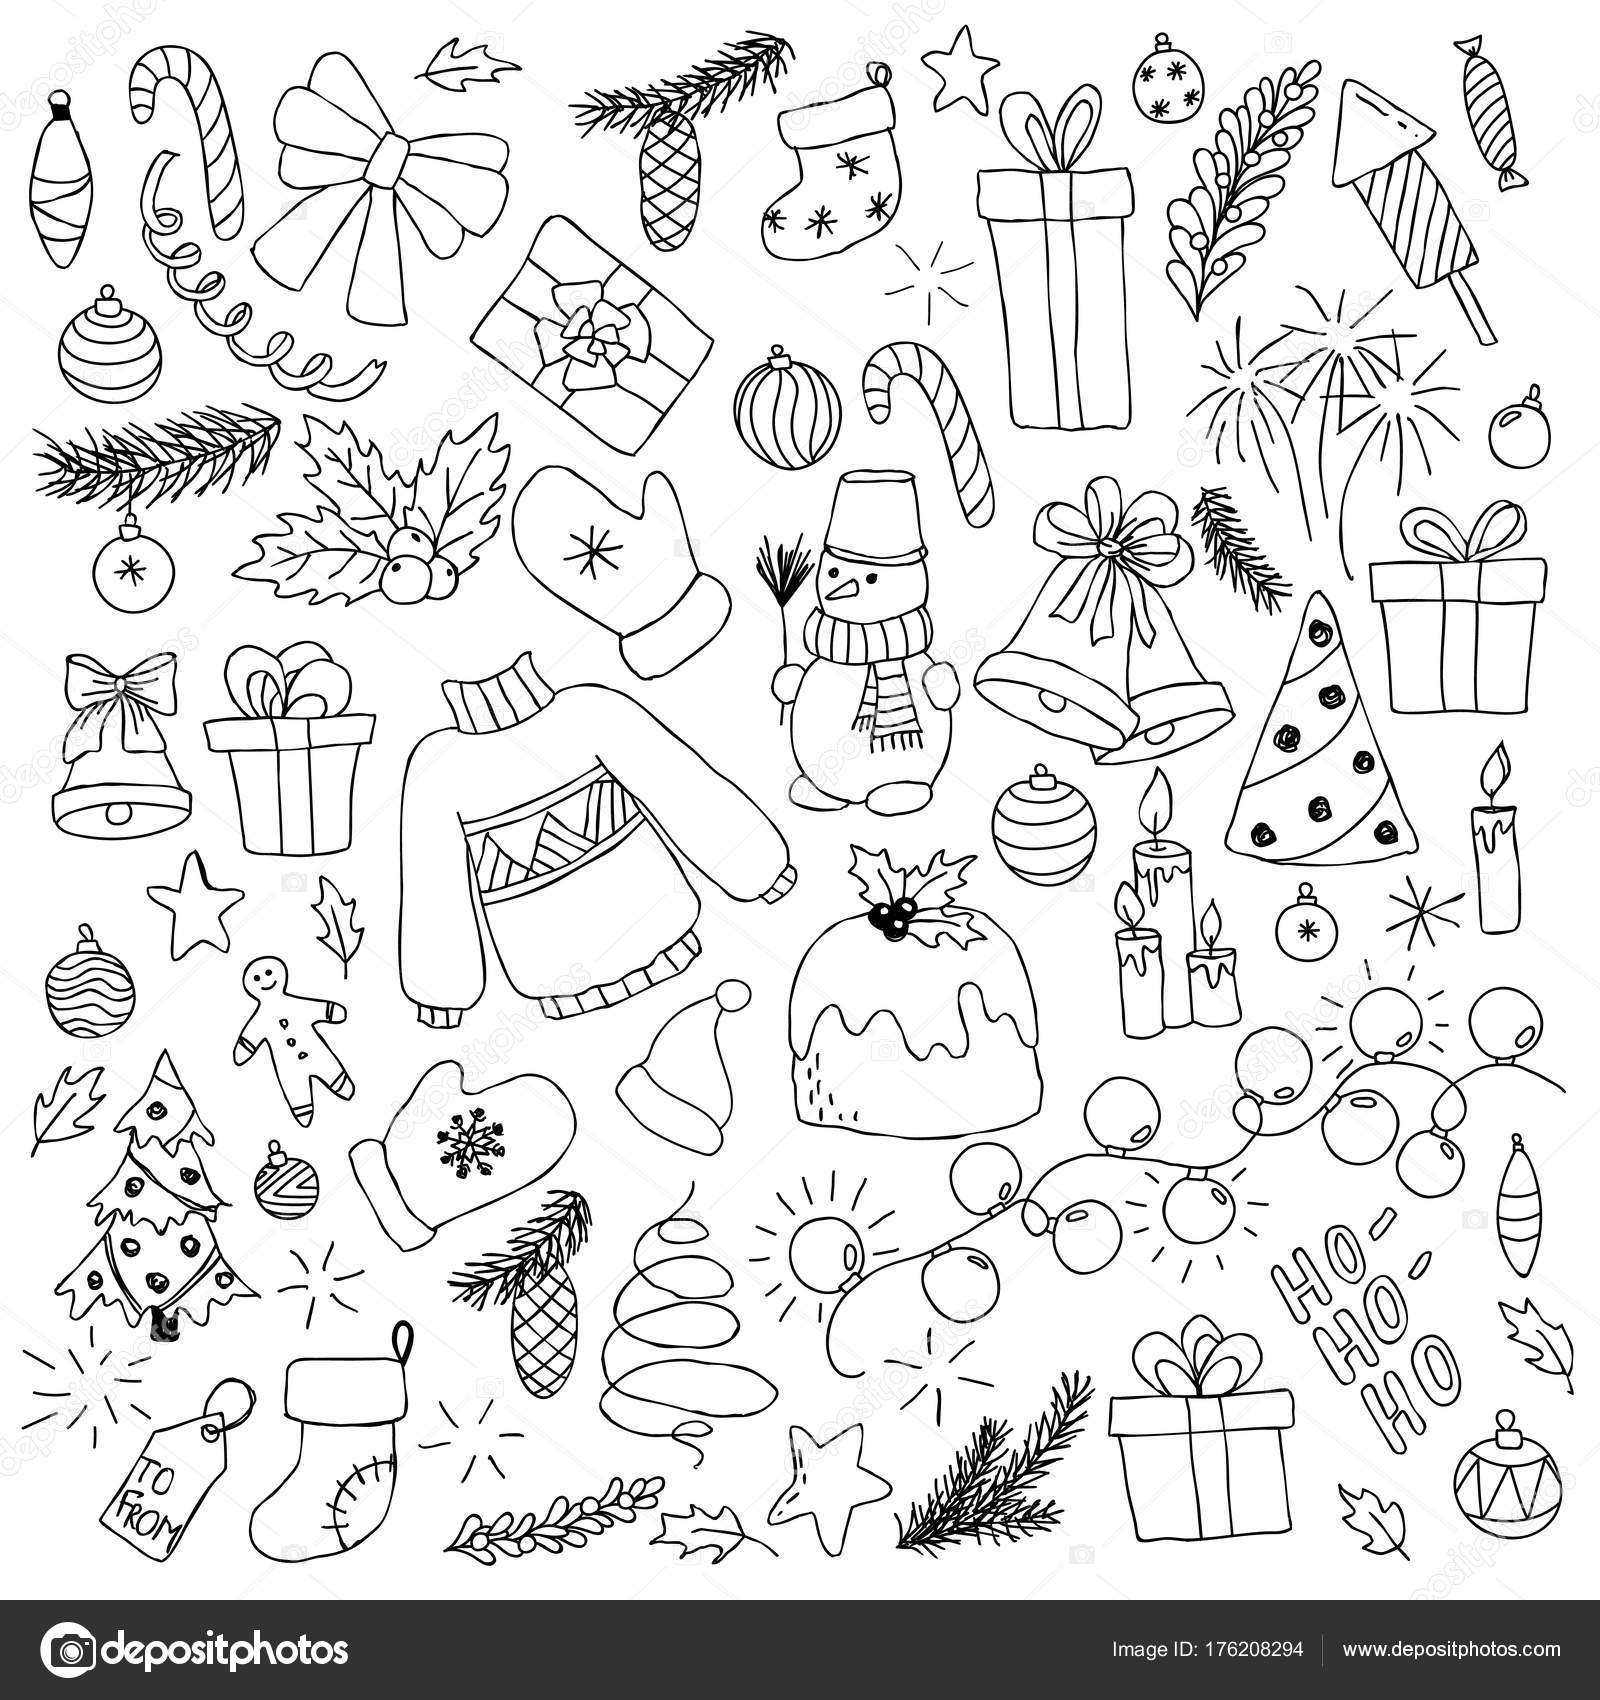 Happy New Year And Merry Christmas Doodle Set Design For Holiday